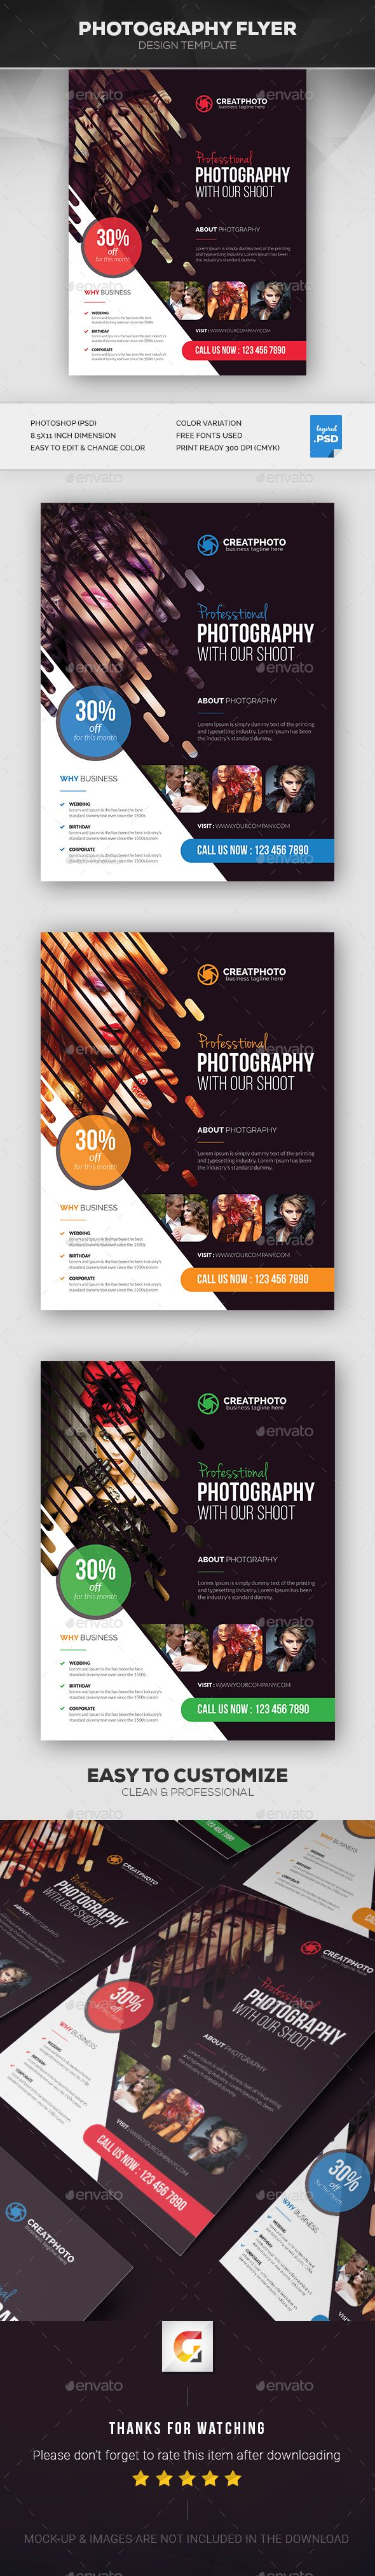 Photography Flyer Template PSD